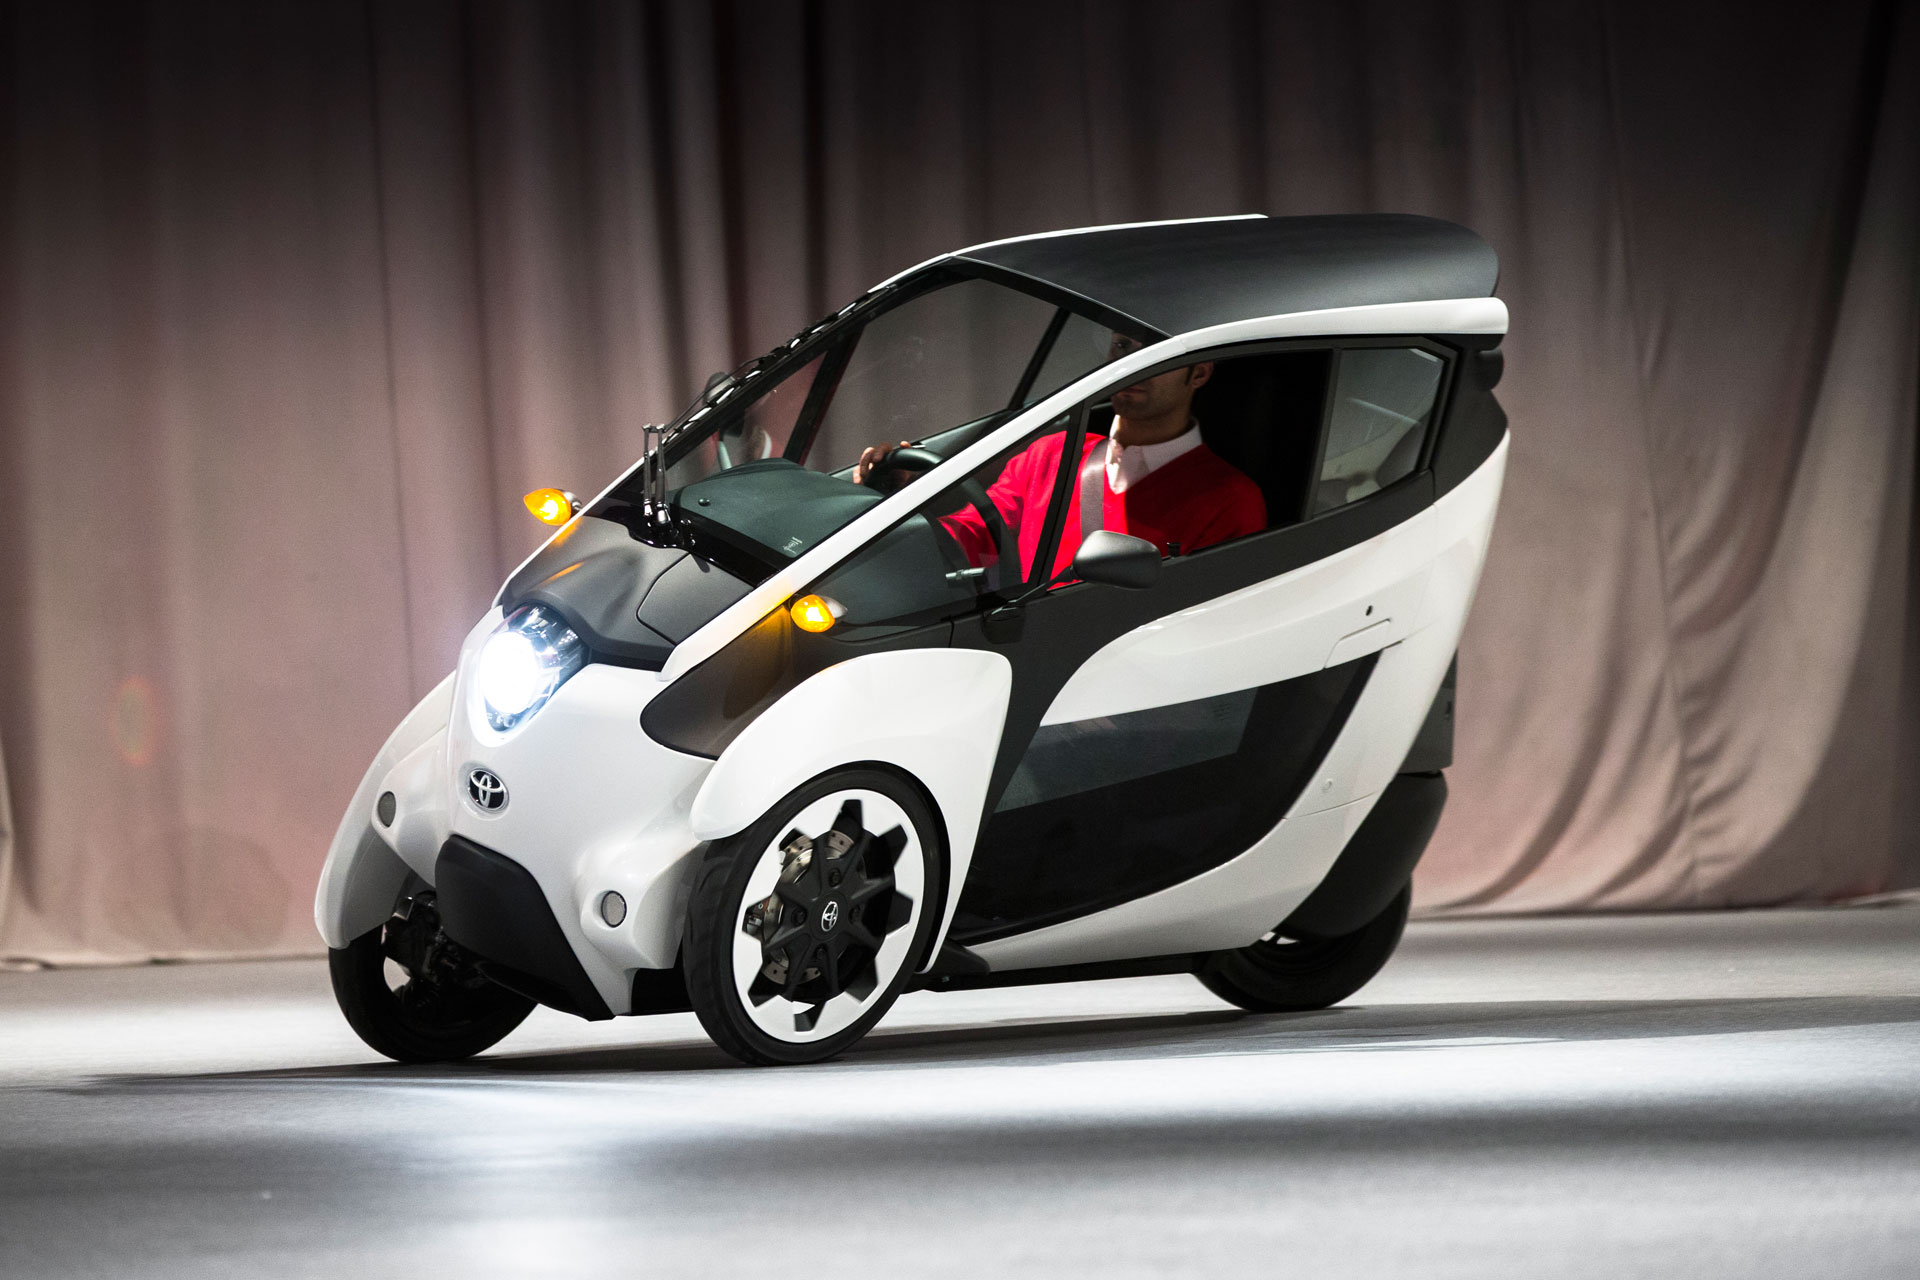 Future Of Mobility The Toyota IRoad Concept Vehicle Makes Canadian - Toyota show car